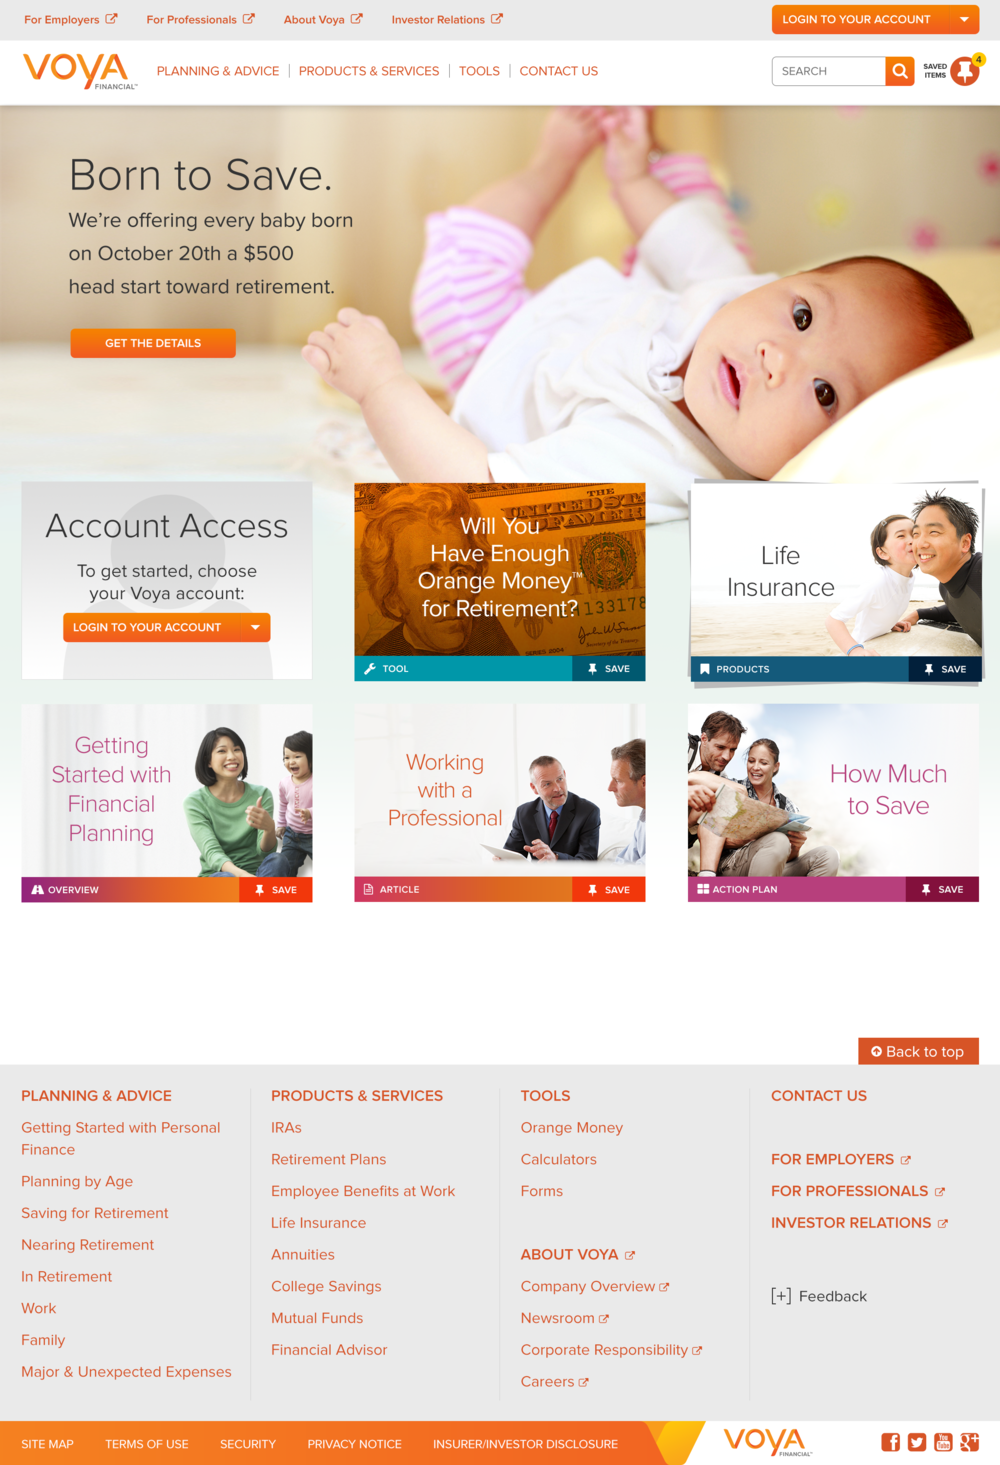 Voya.com during #BorntoSave Campaign